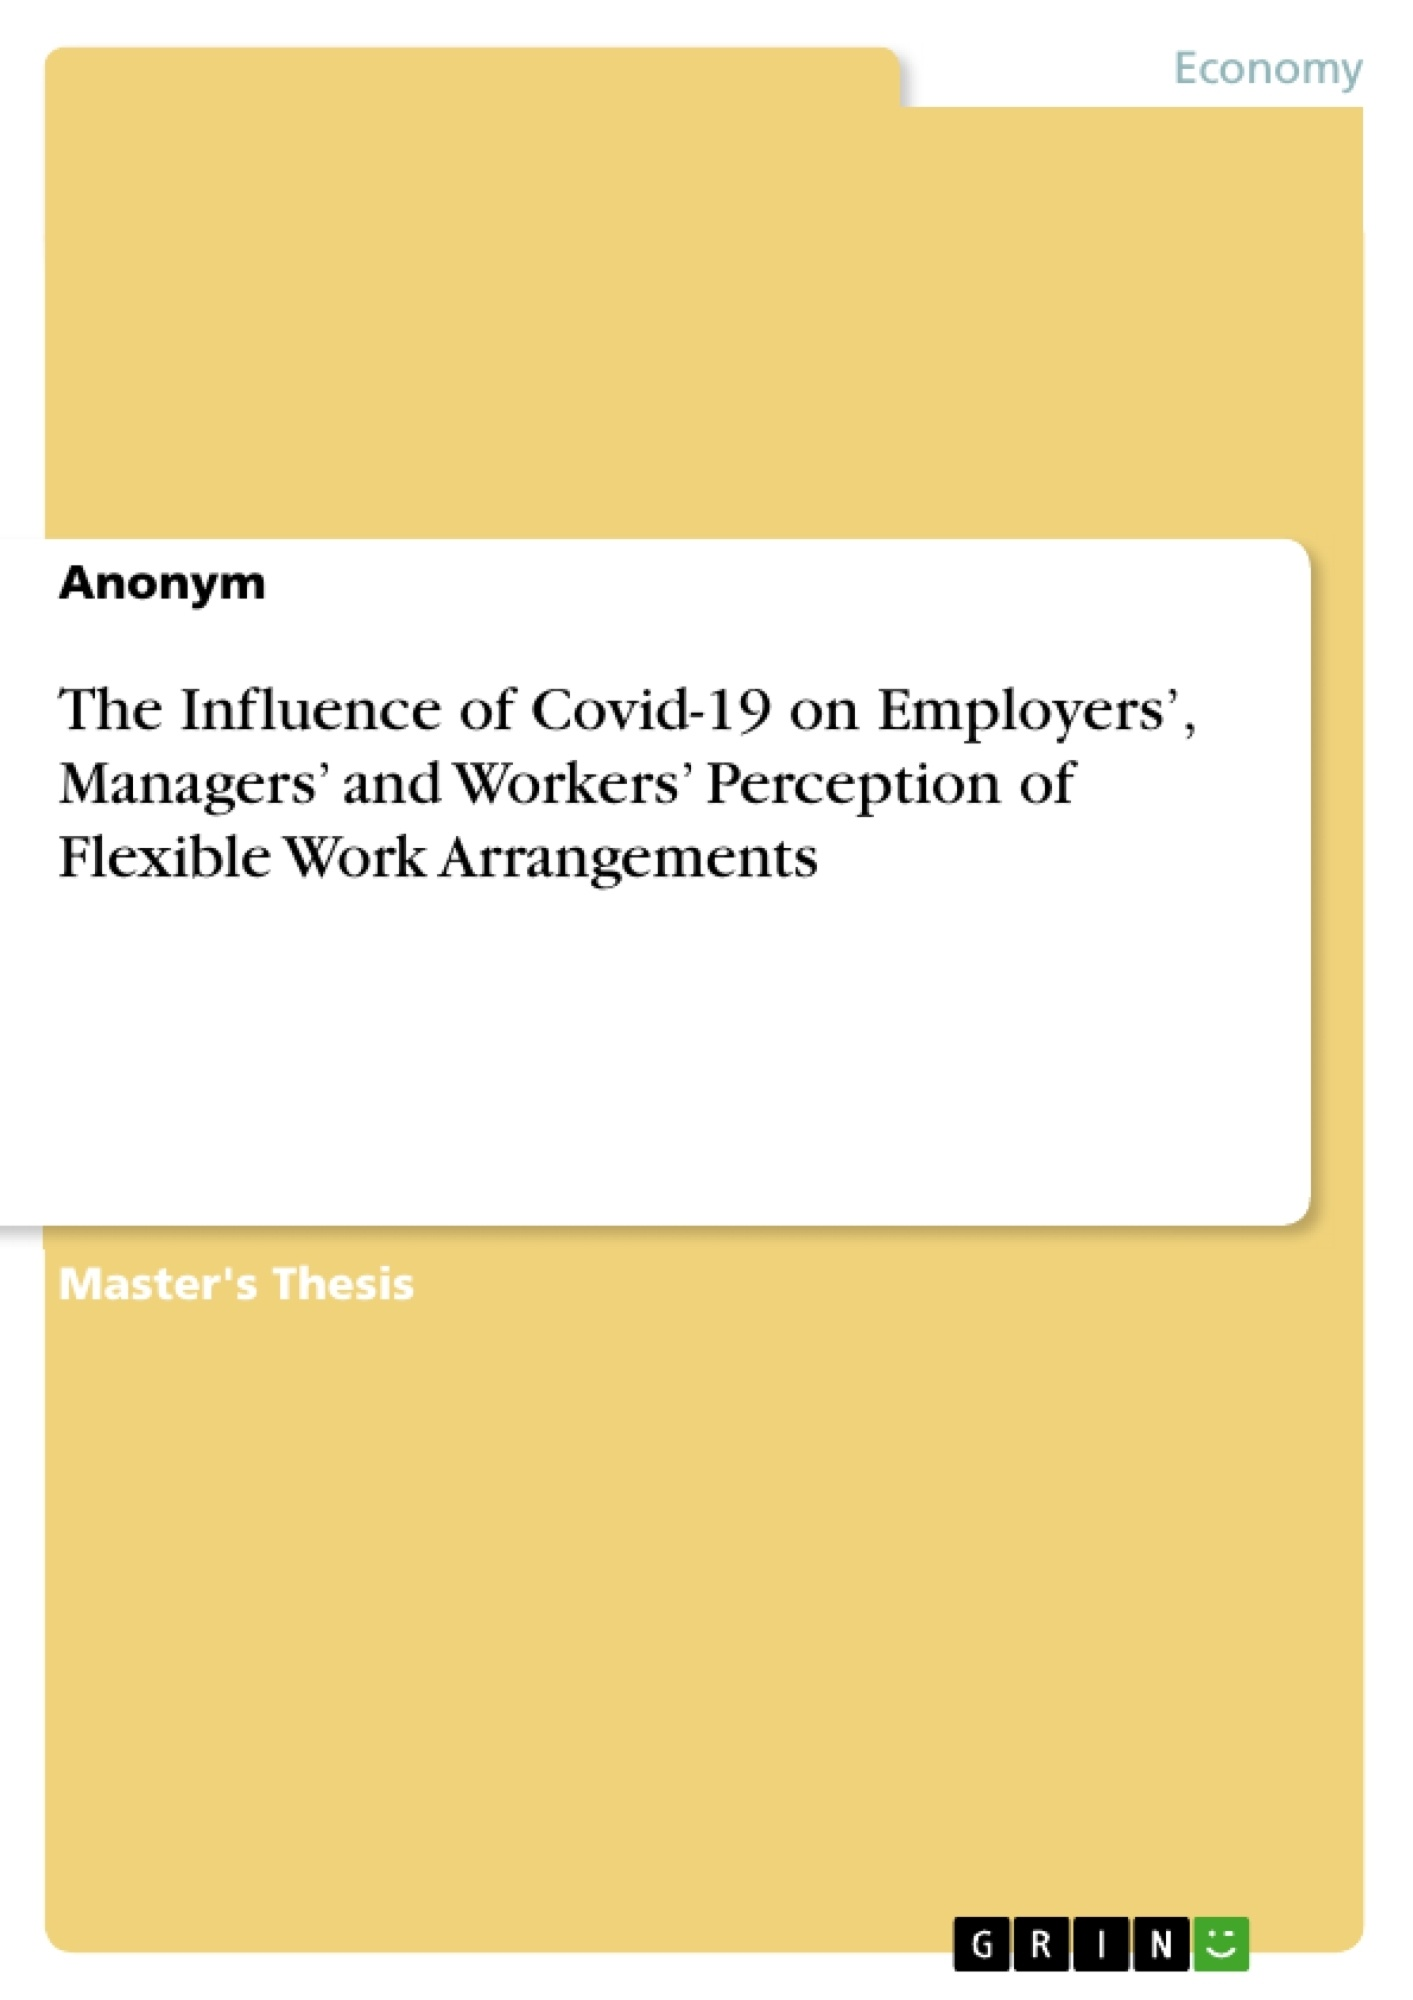 Title: The Influence of Covid-19 on Employers', Managers' and Workers' Perception of Flexible Work Arrangements